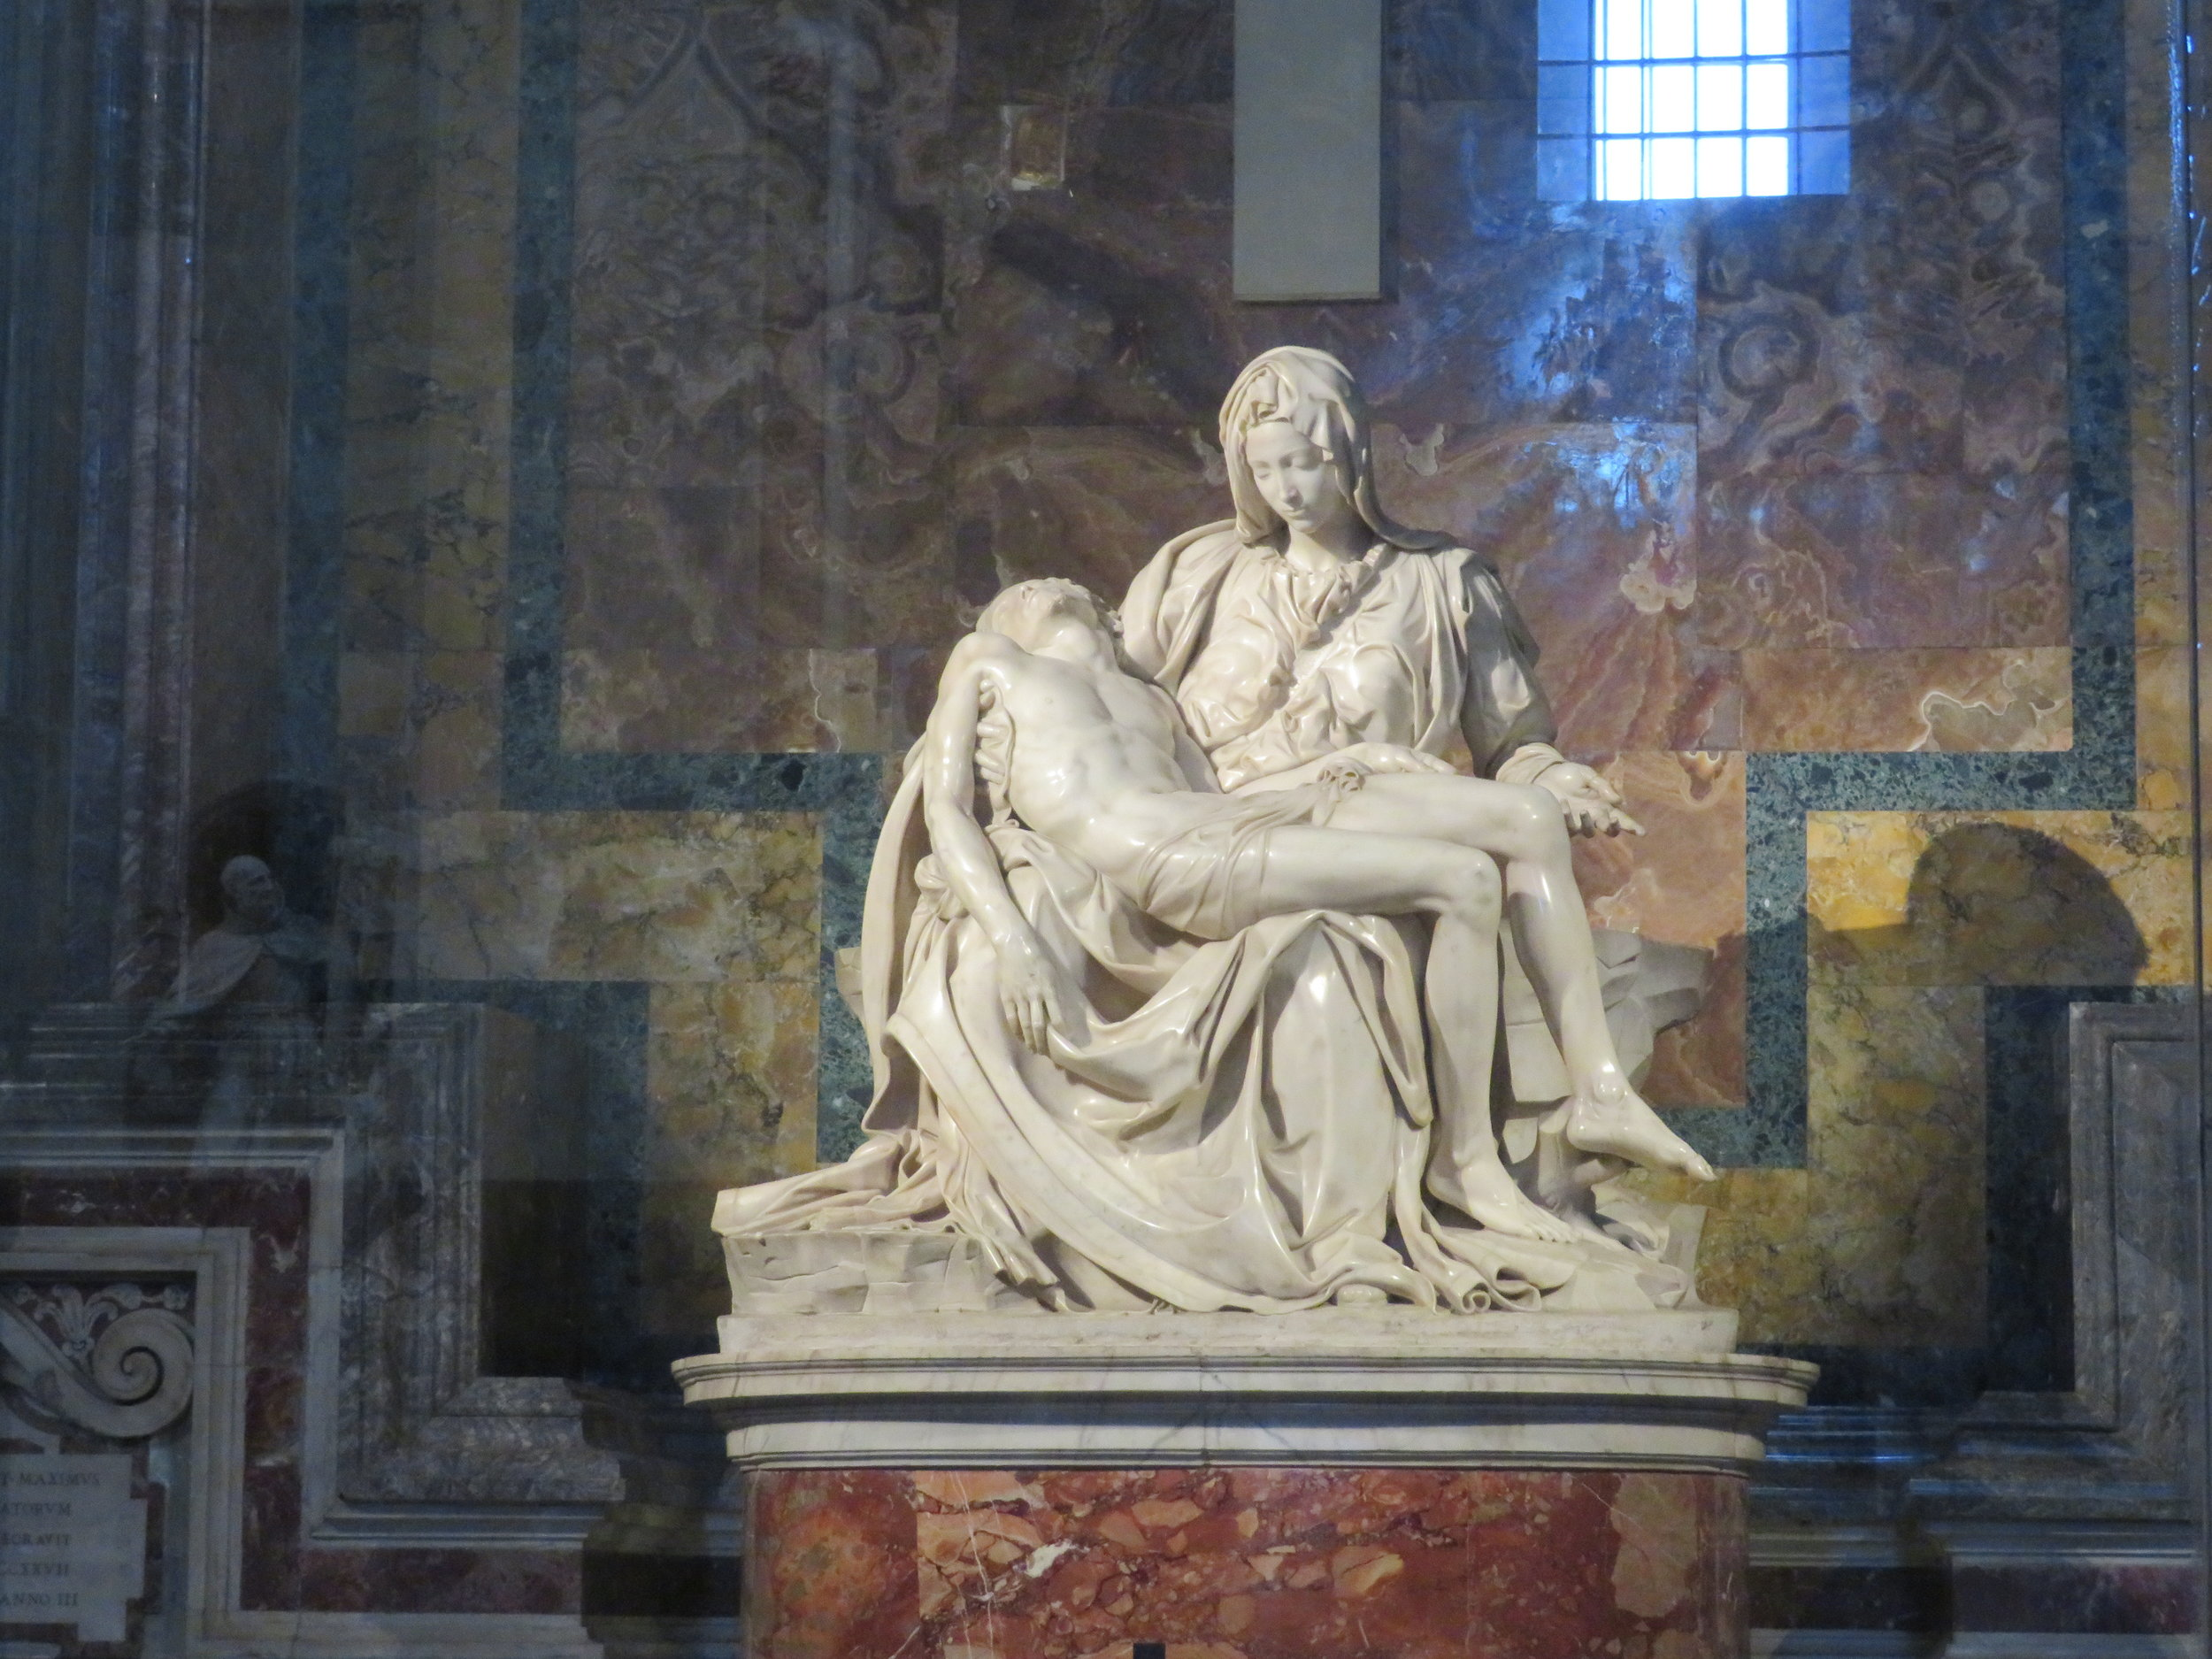 The Pieta by Michelangelo. This is one of few pieces that Michelangelo signed and actually used his whole name, Michelangelo di Lodovico Buonarroti Simoni which is unobrusively carved on Mary's belt.